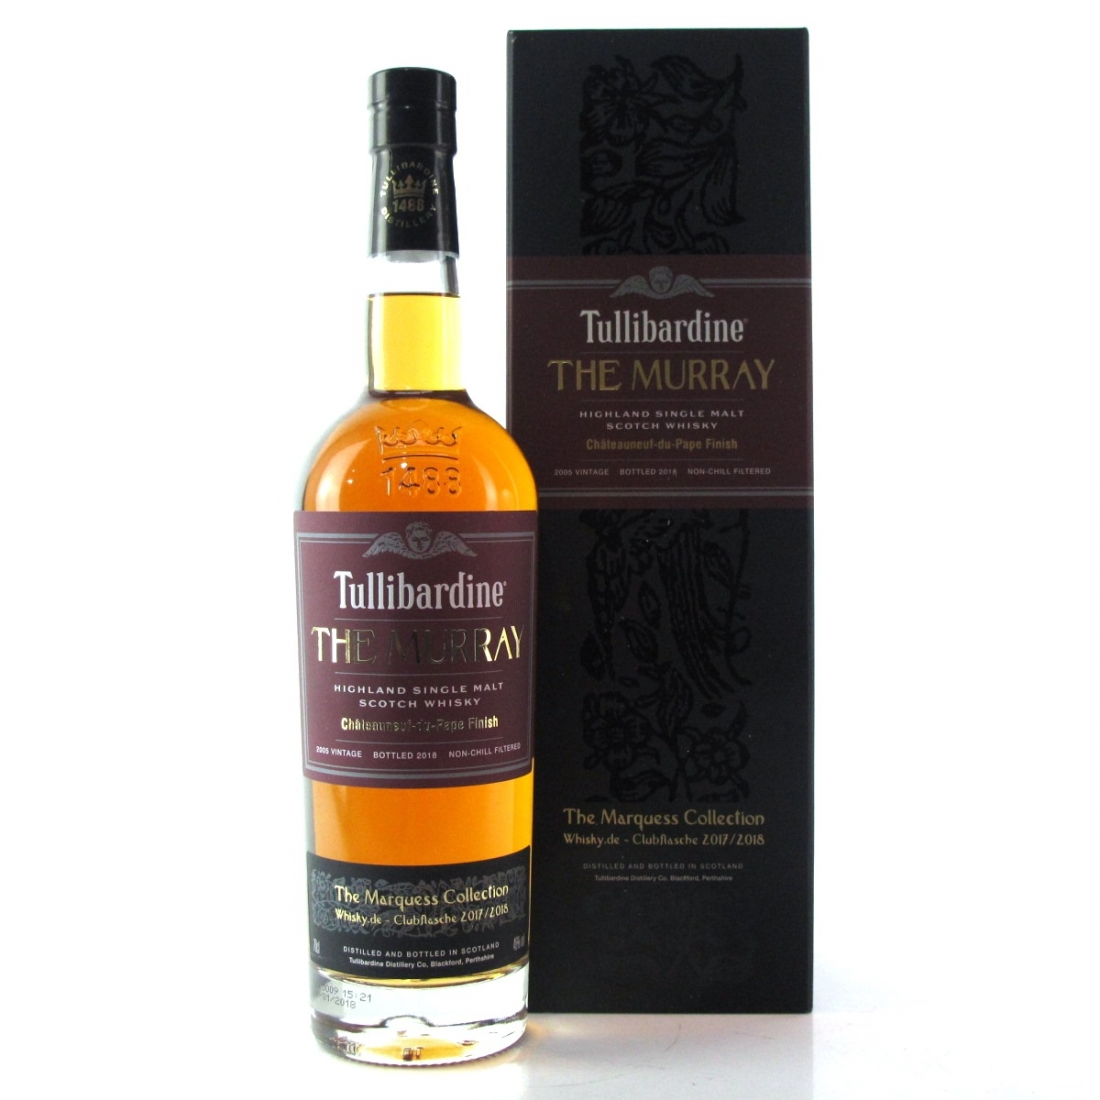 Tullibardine 2005 The Murray / The Marquess Collection